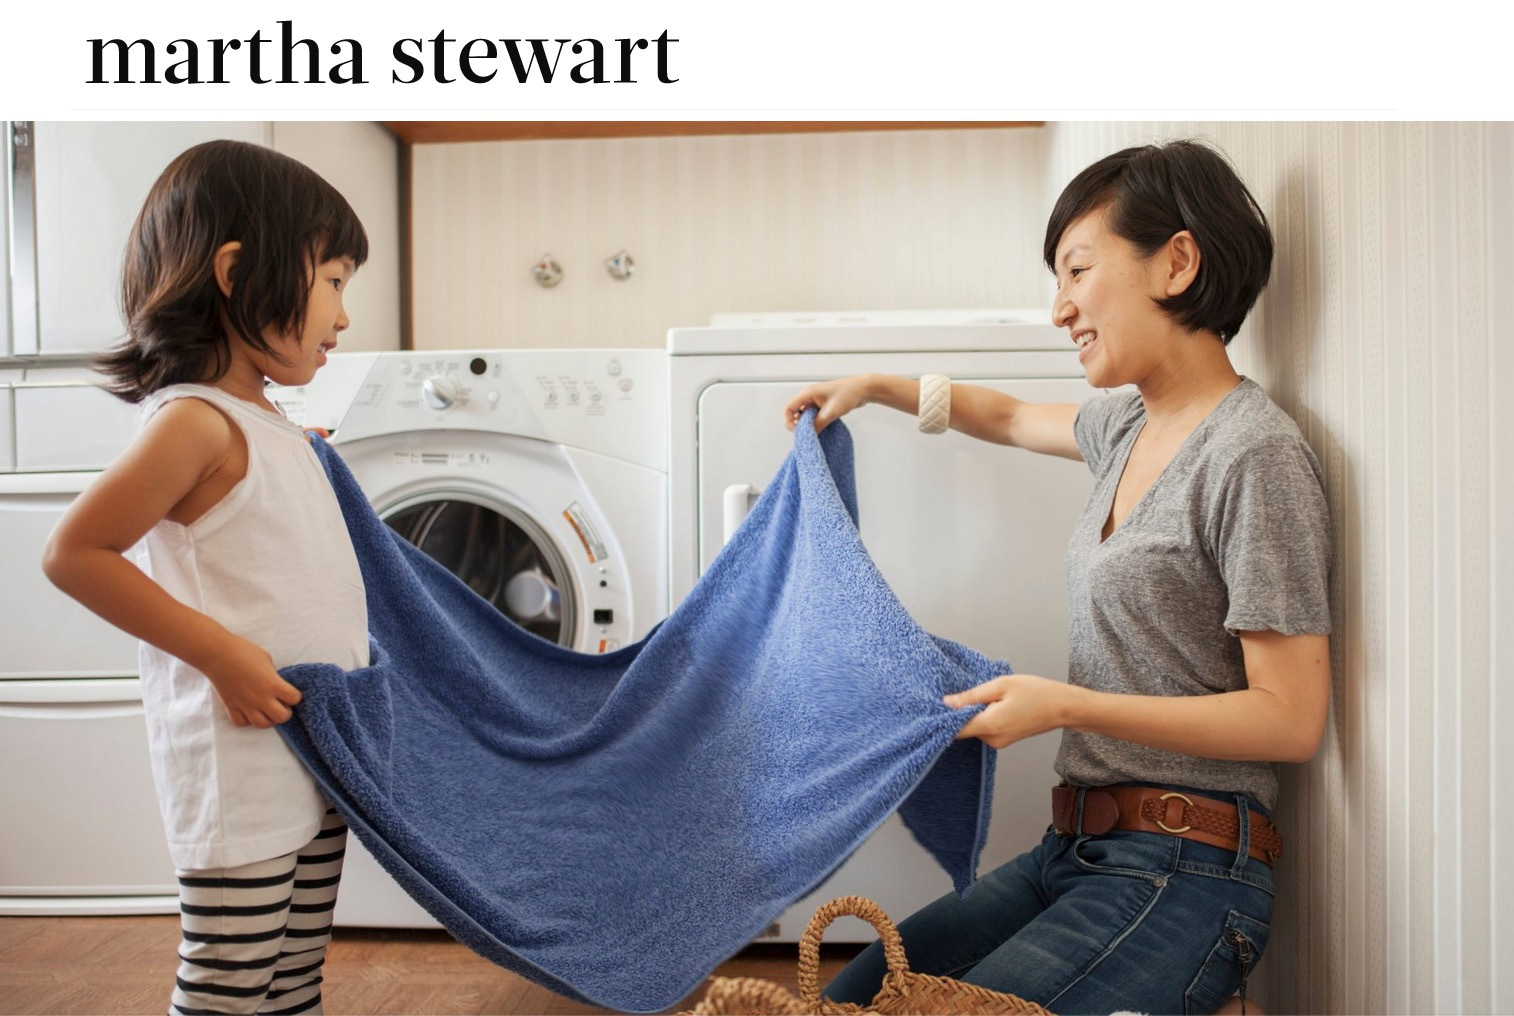 Woman and child folding laundry in laundry room